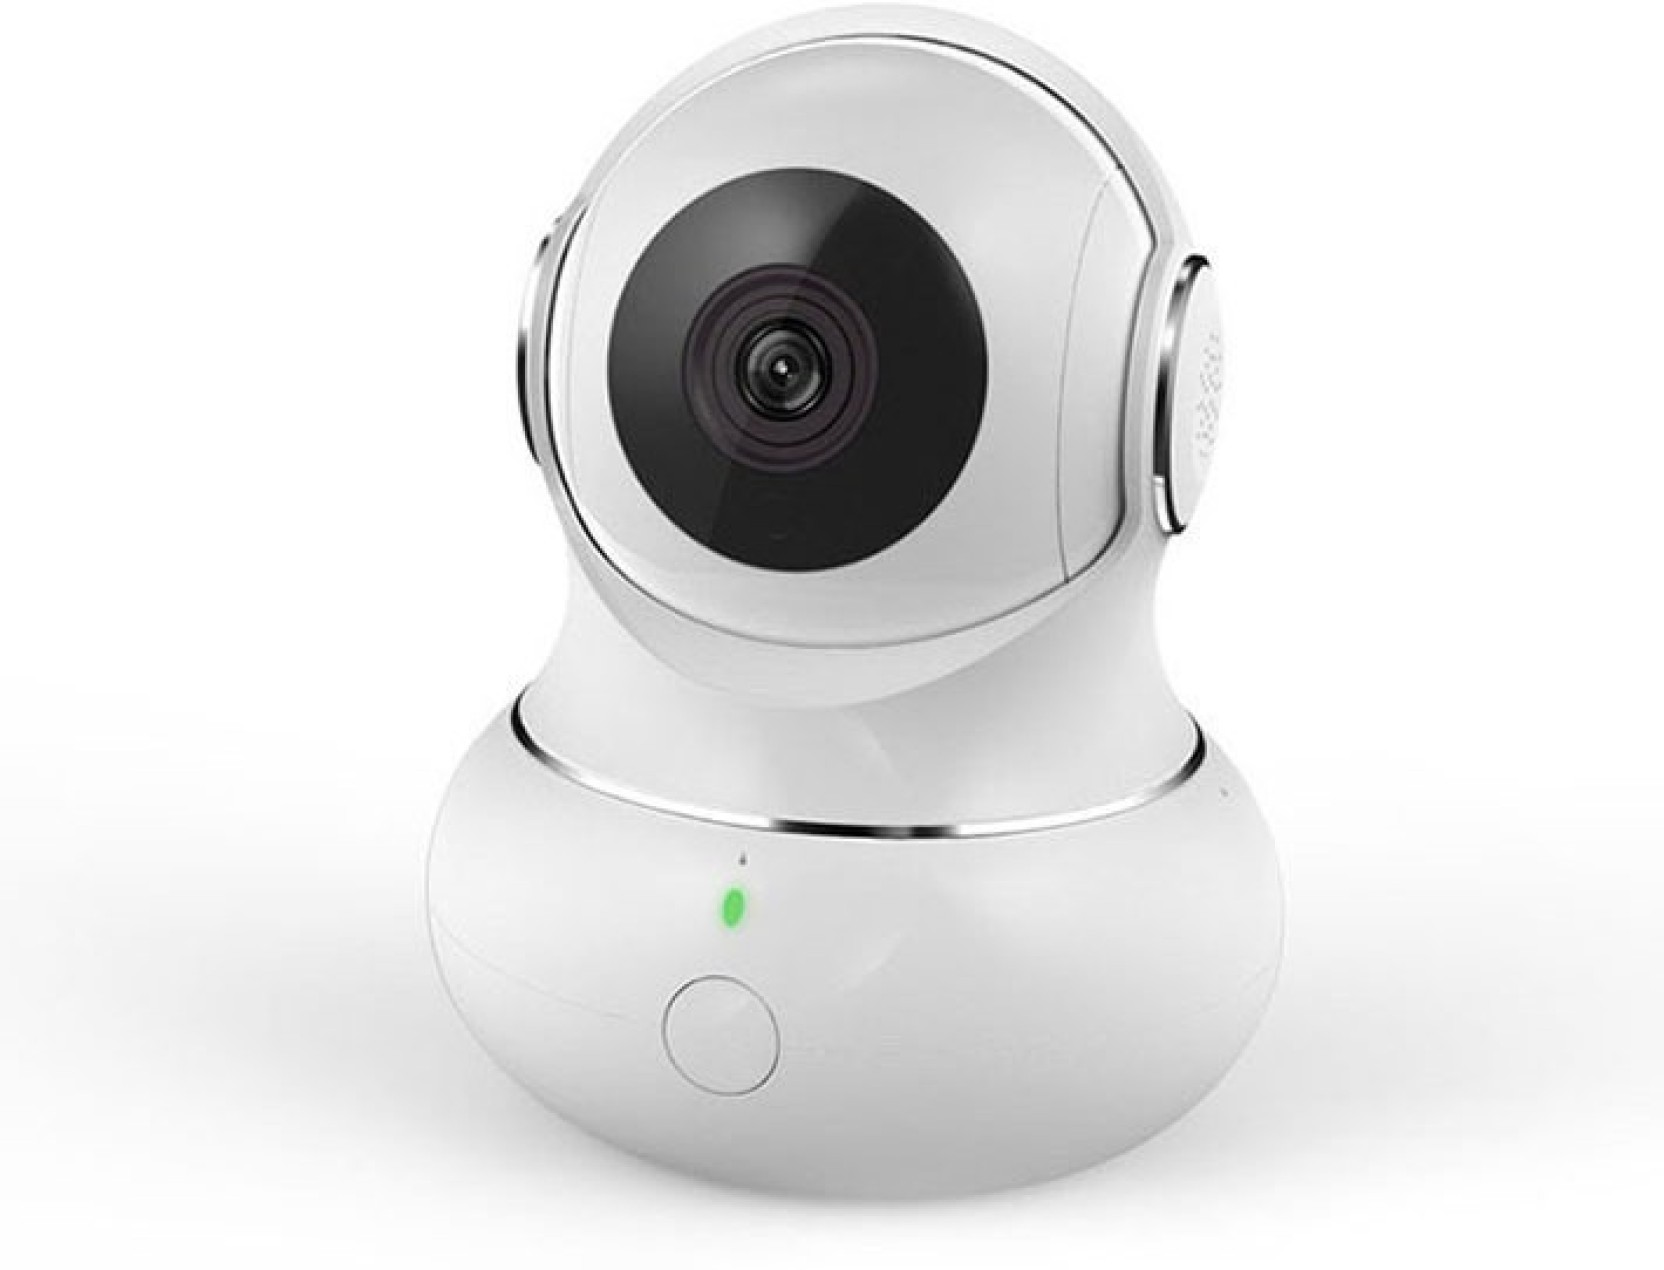 Image result for D3D D829 1080P WiFi Home Security Camera 2 0 MP 360 PTZ